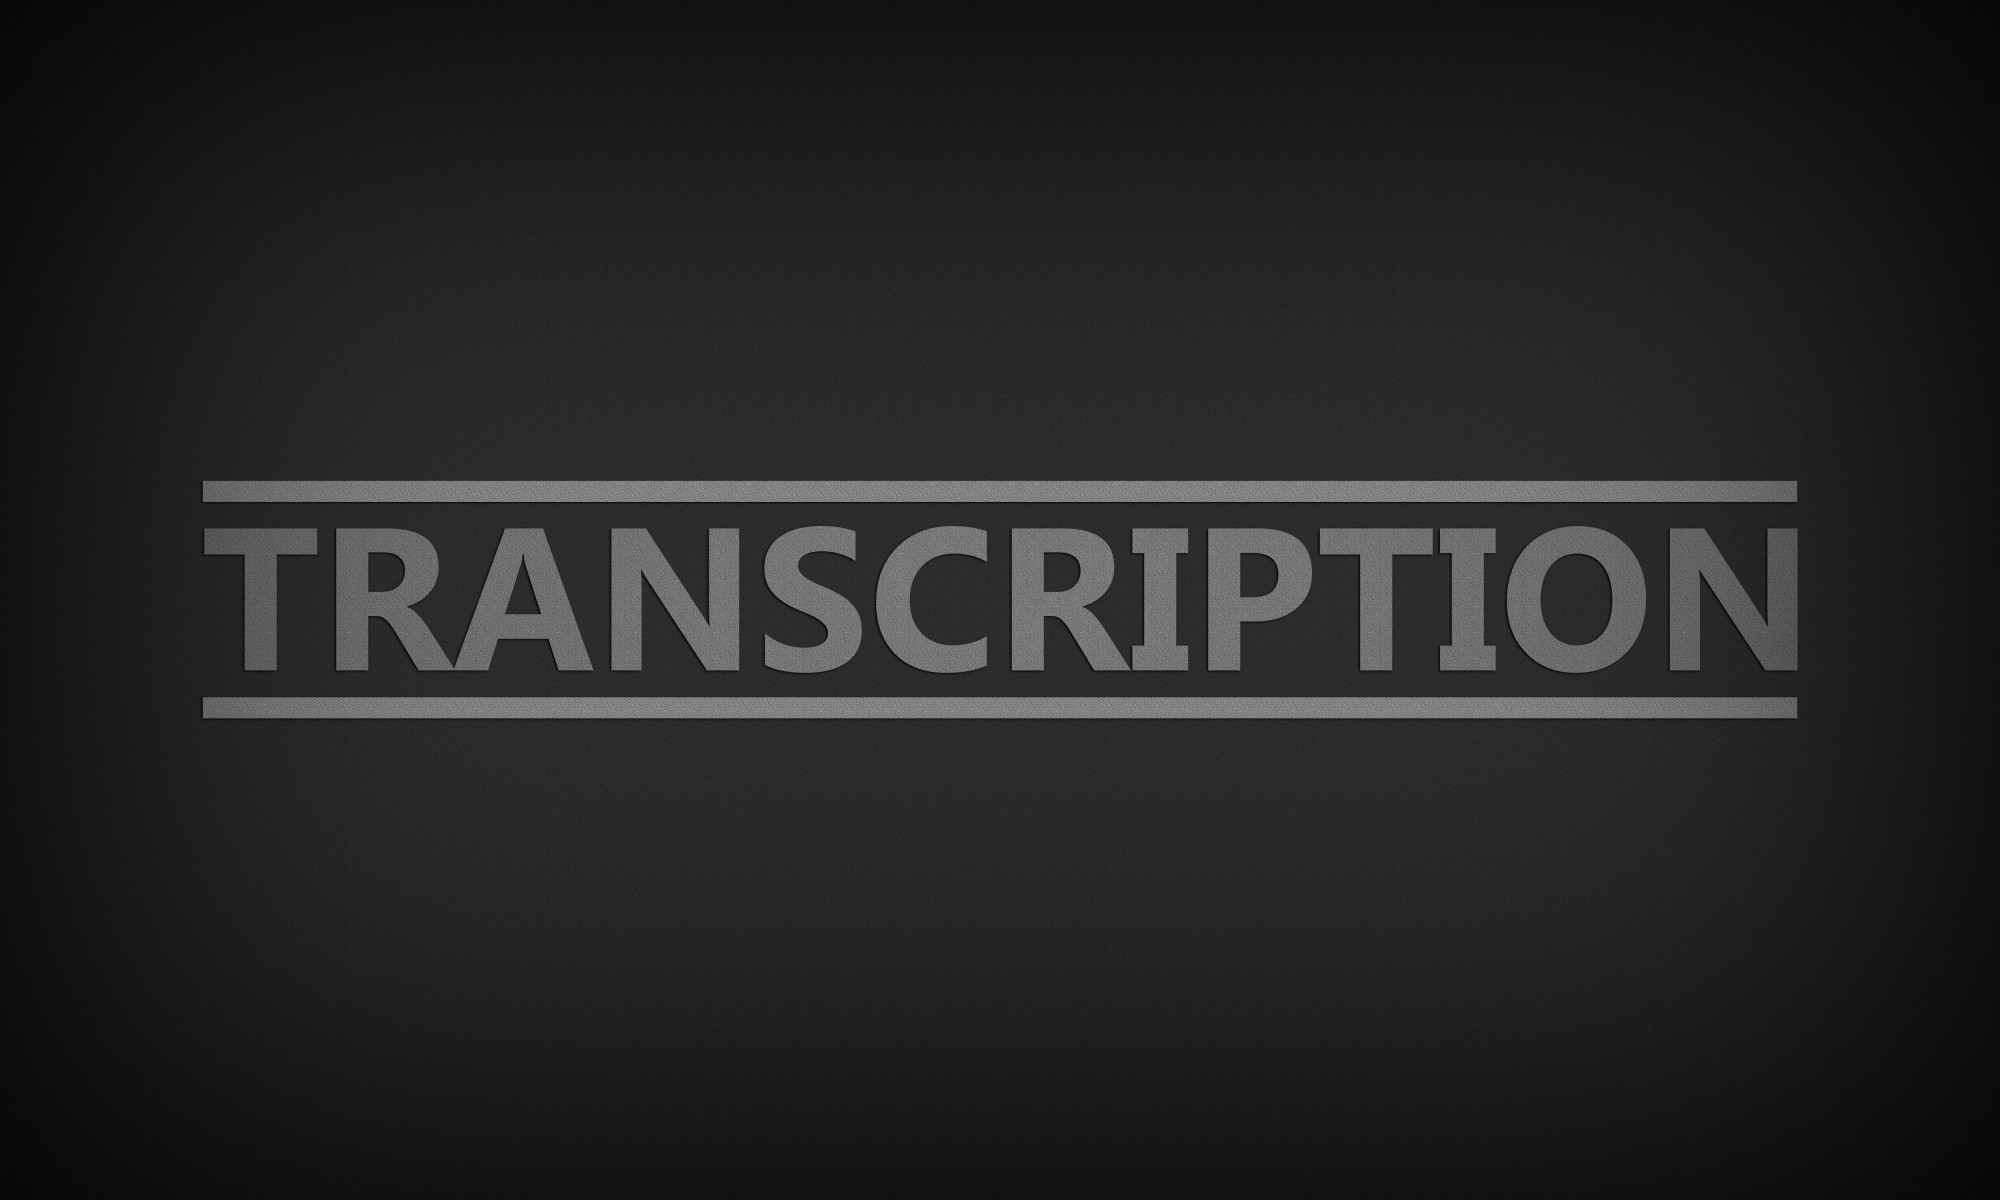 Why You Should Use a Transcription Service for Your Business